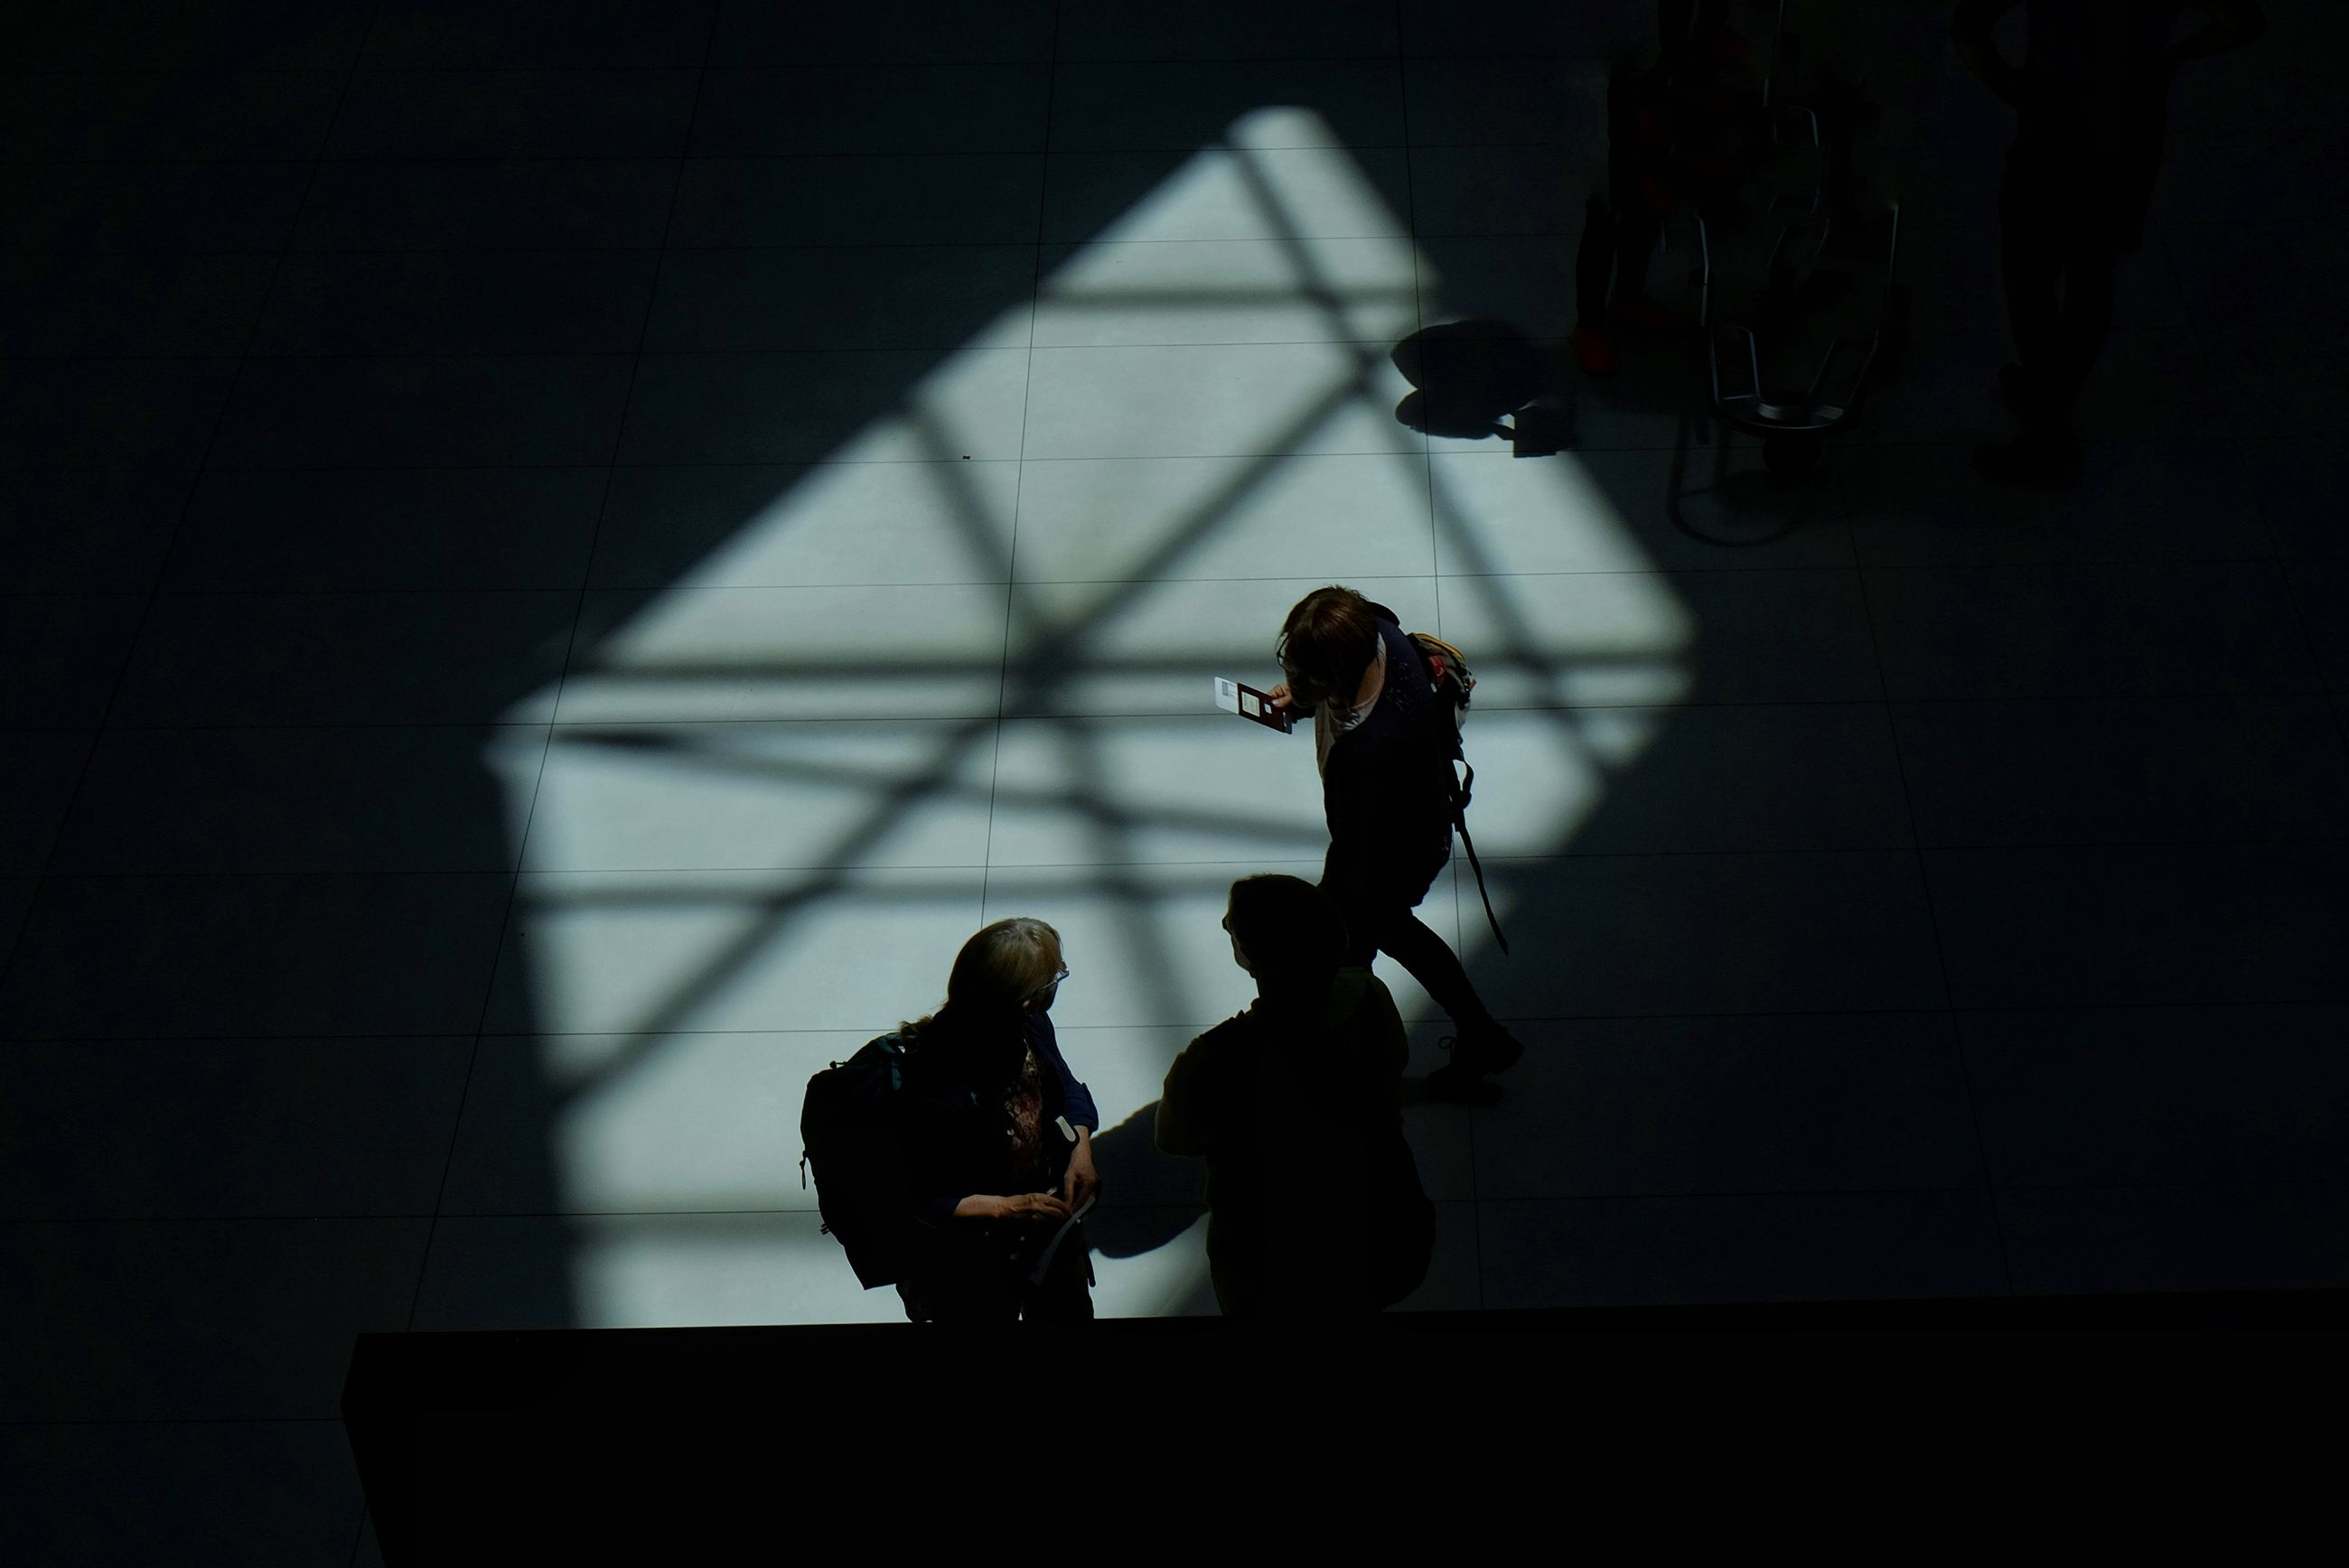 real people, standing, indoors, lifestyles, stage - performance space, women, performance, shadow, architecture, day, young adult